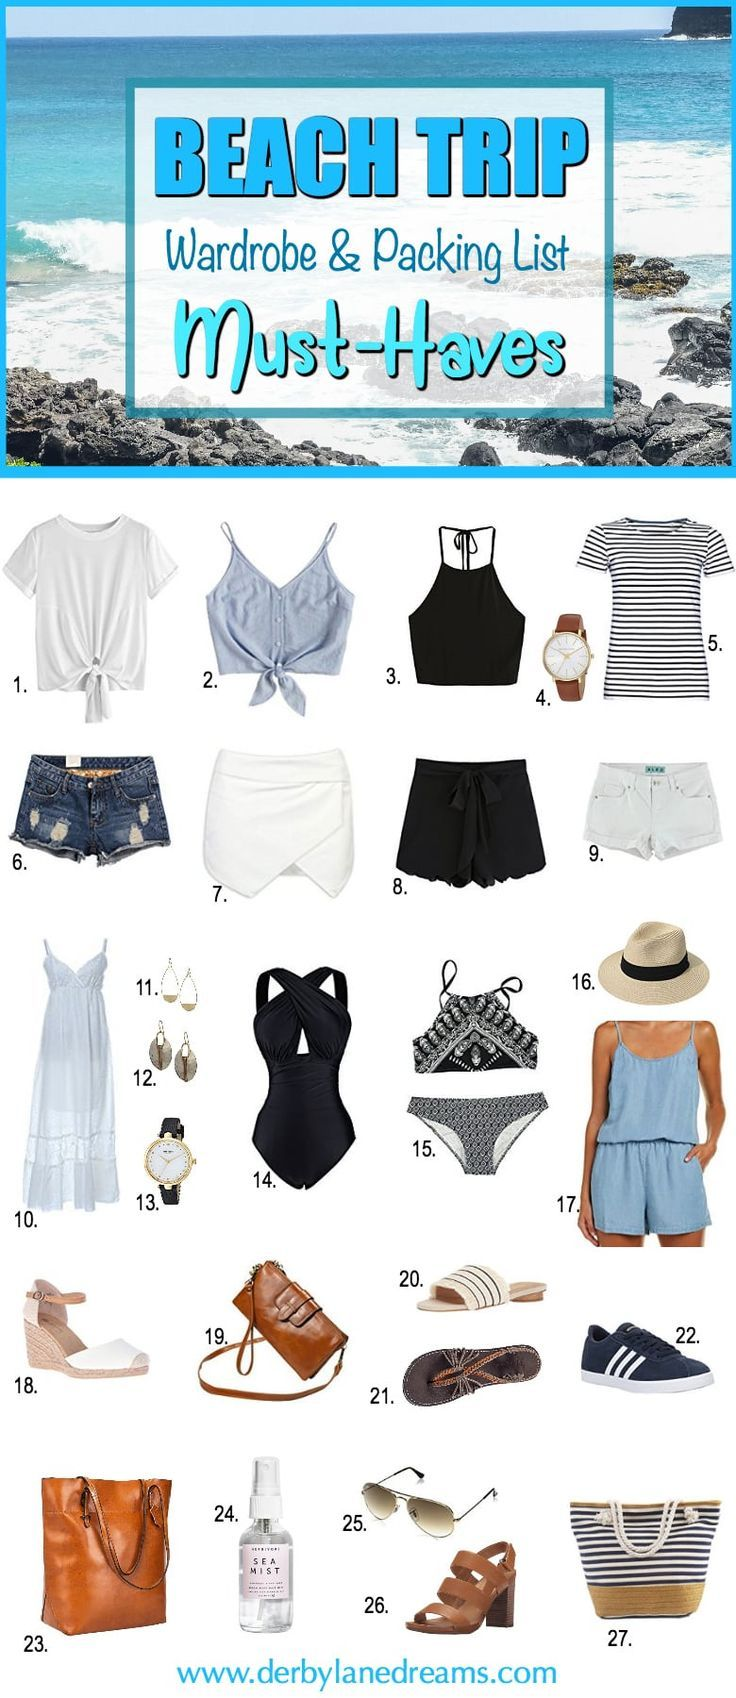 Beach Trip Wardrobe and Packing List #travelwardrobesummer